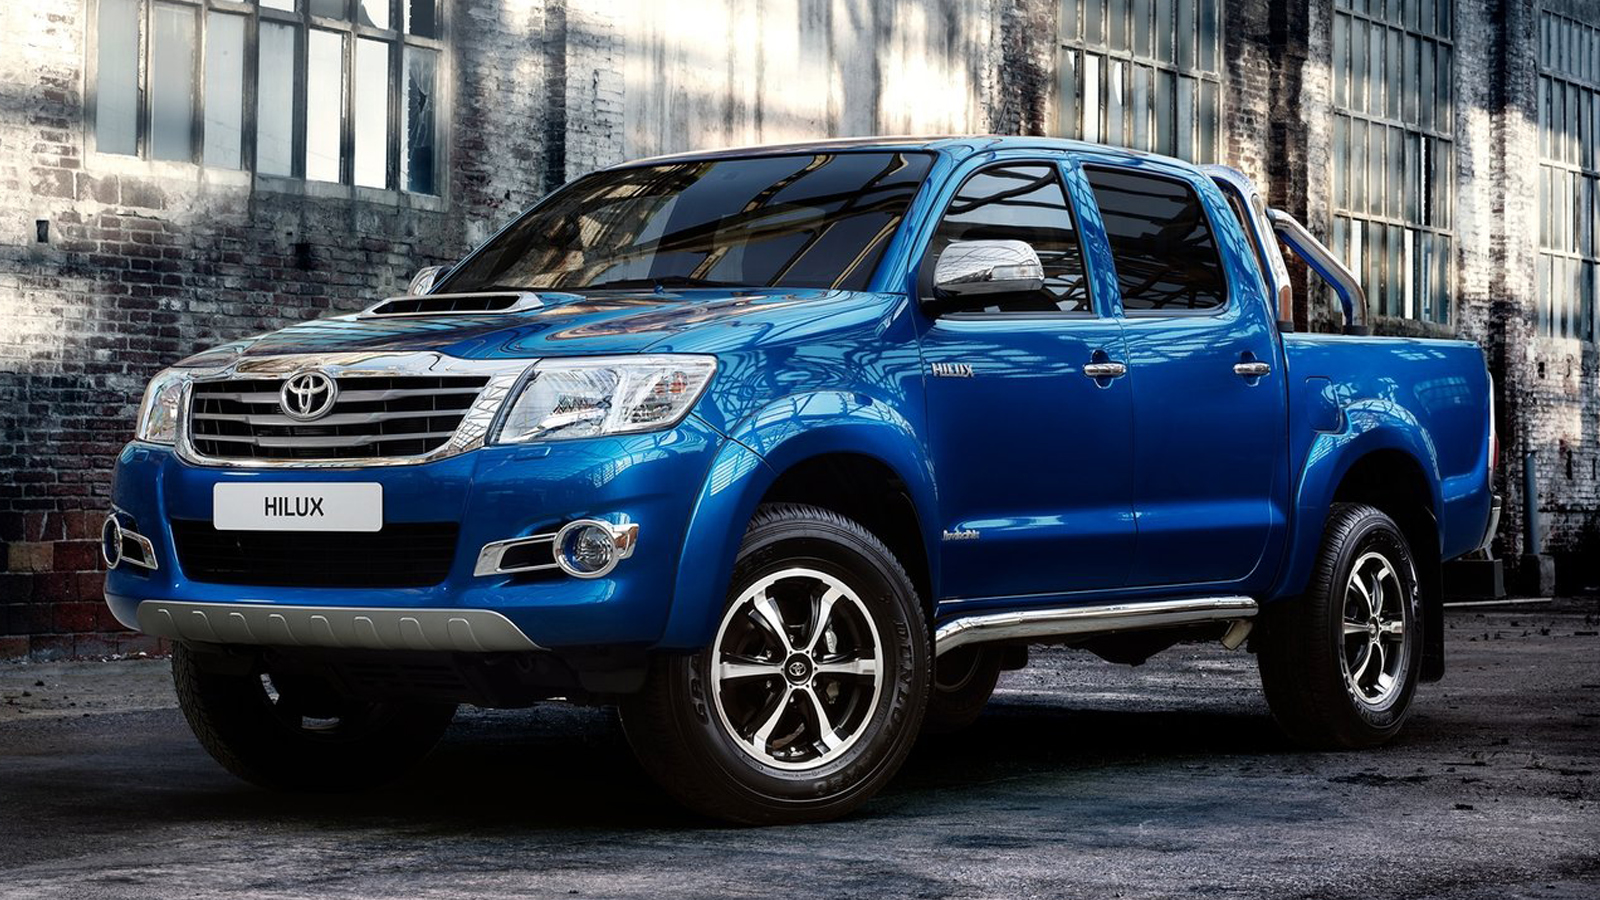 CARWP: 25 Toyota Hilux Invincible